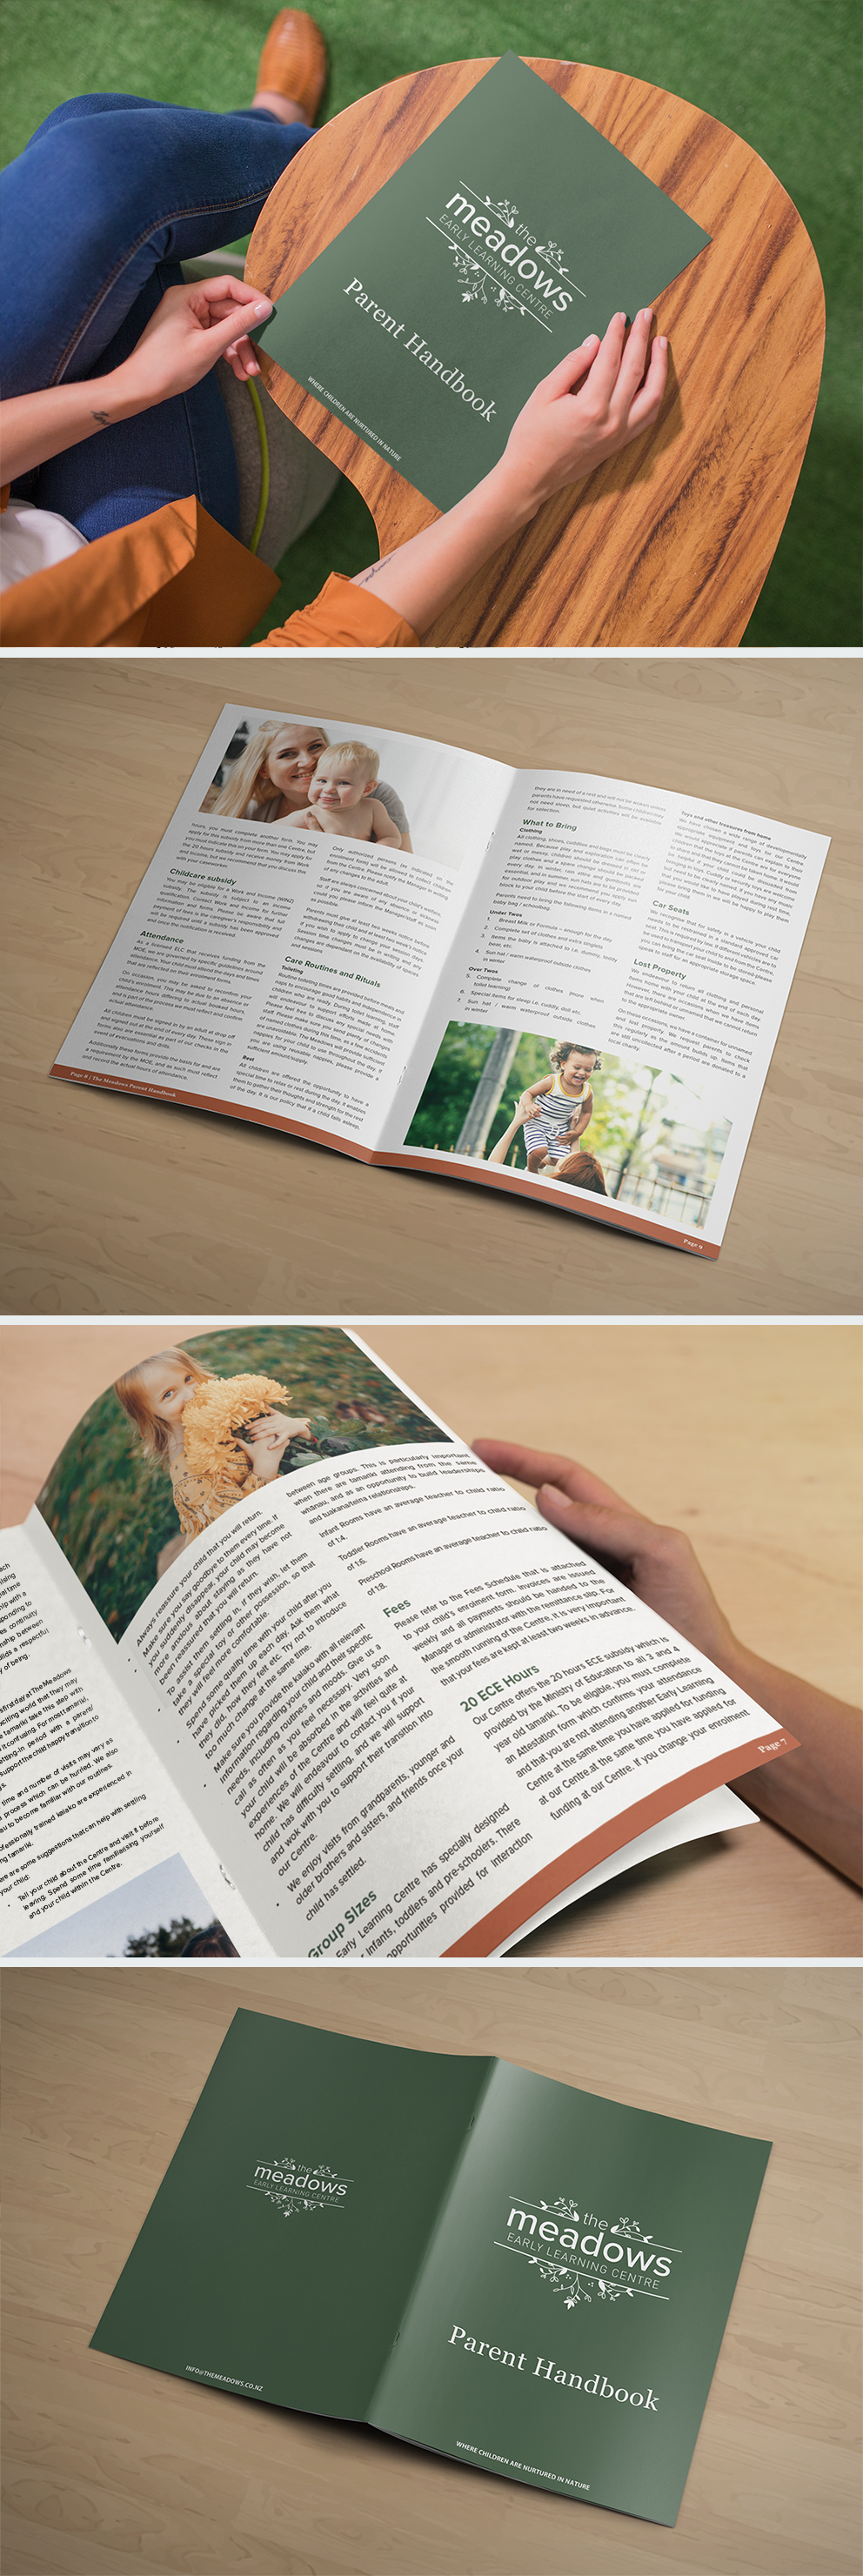 The Meadows brochure design Simply Whyte Design branding and squarespace design.png